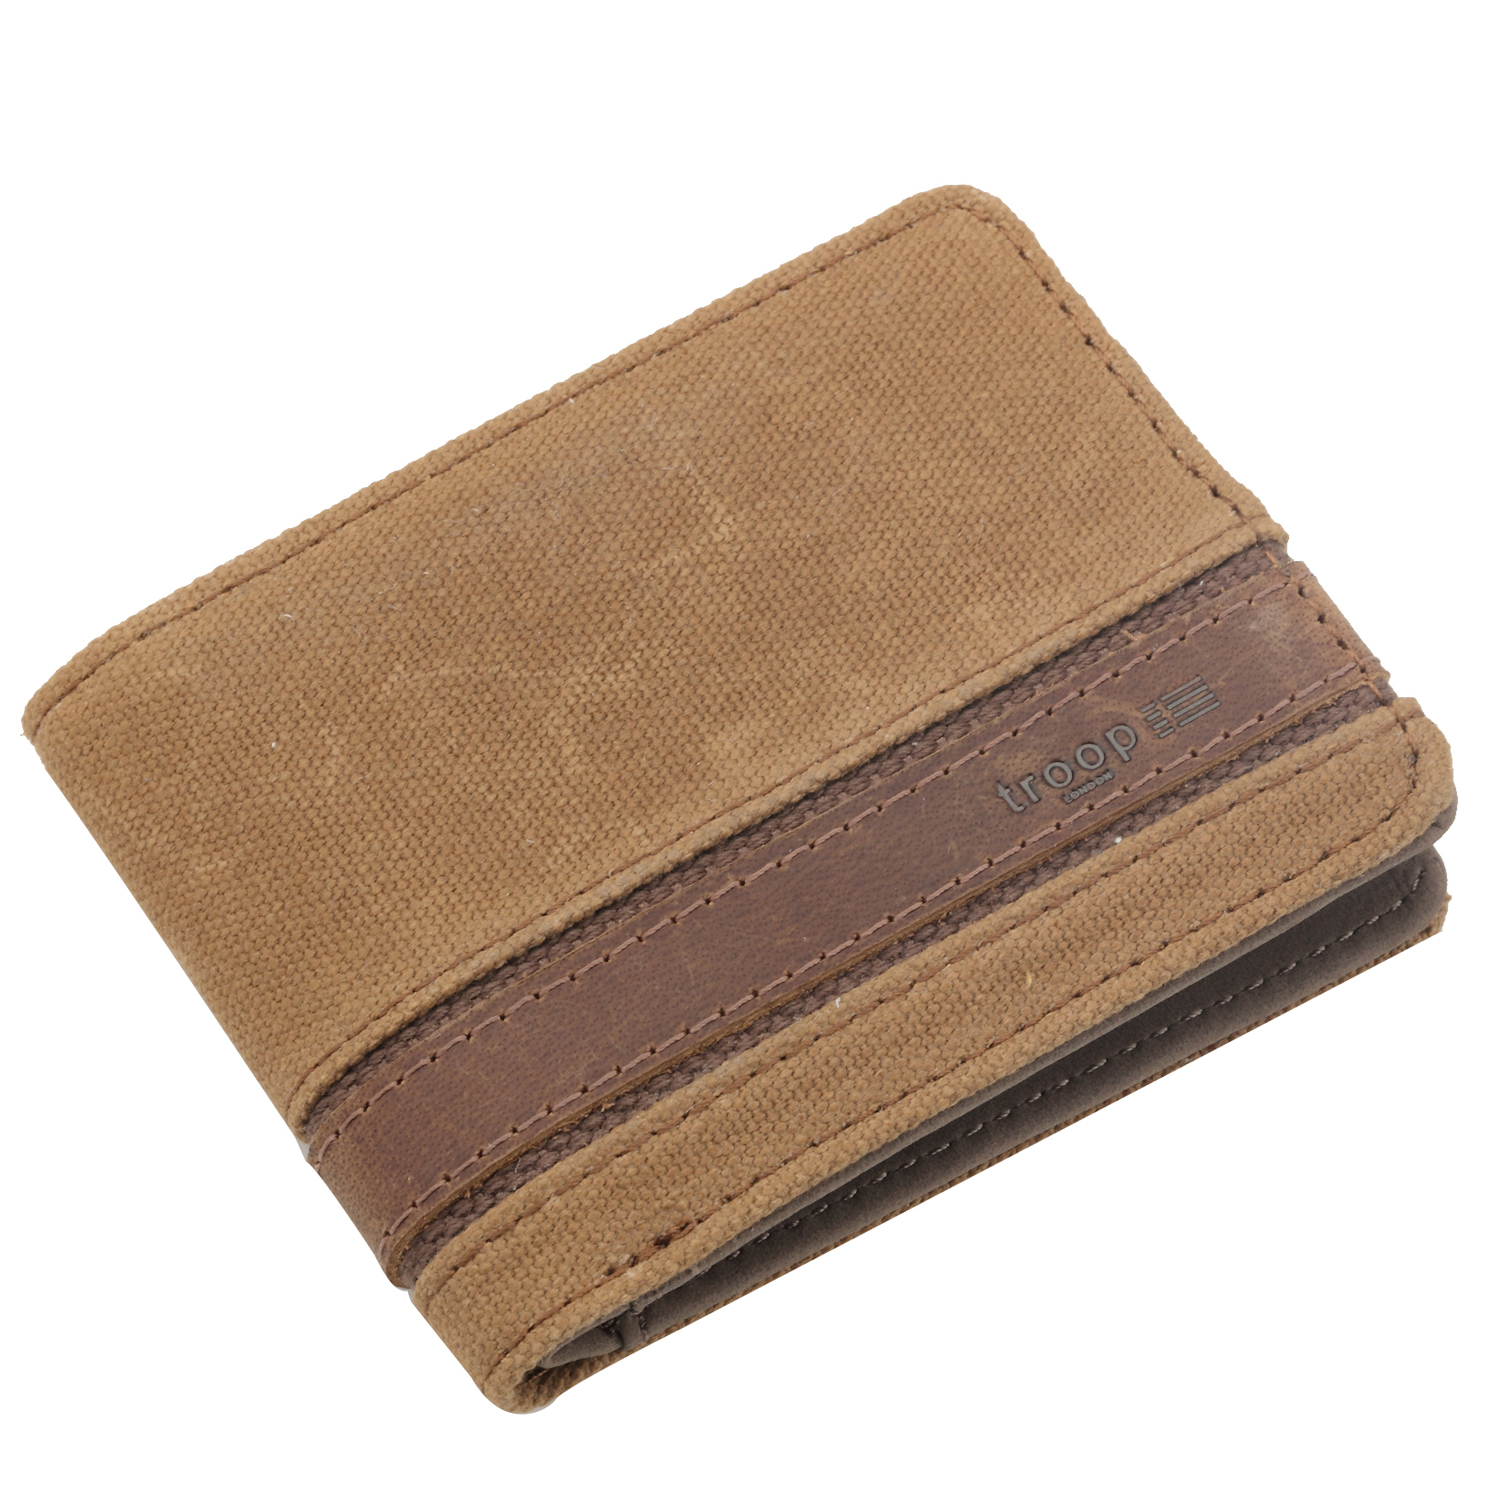 Troop London: Colorado Canvas Wallet - Camel image